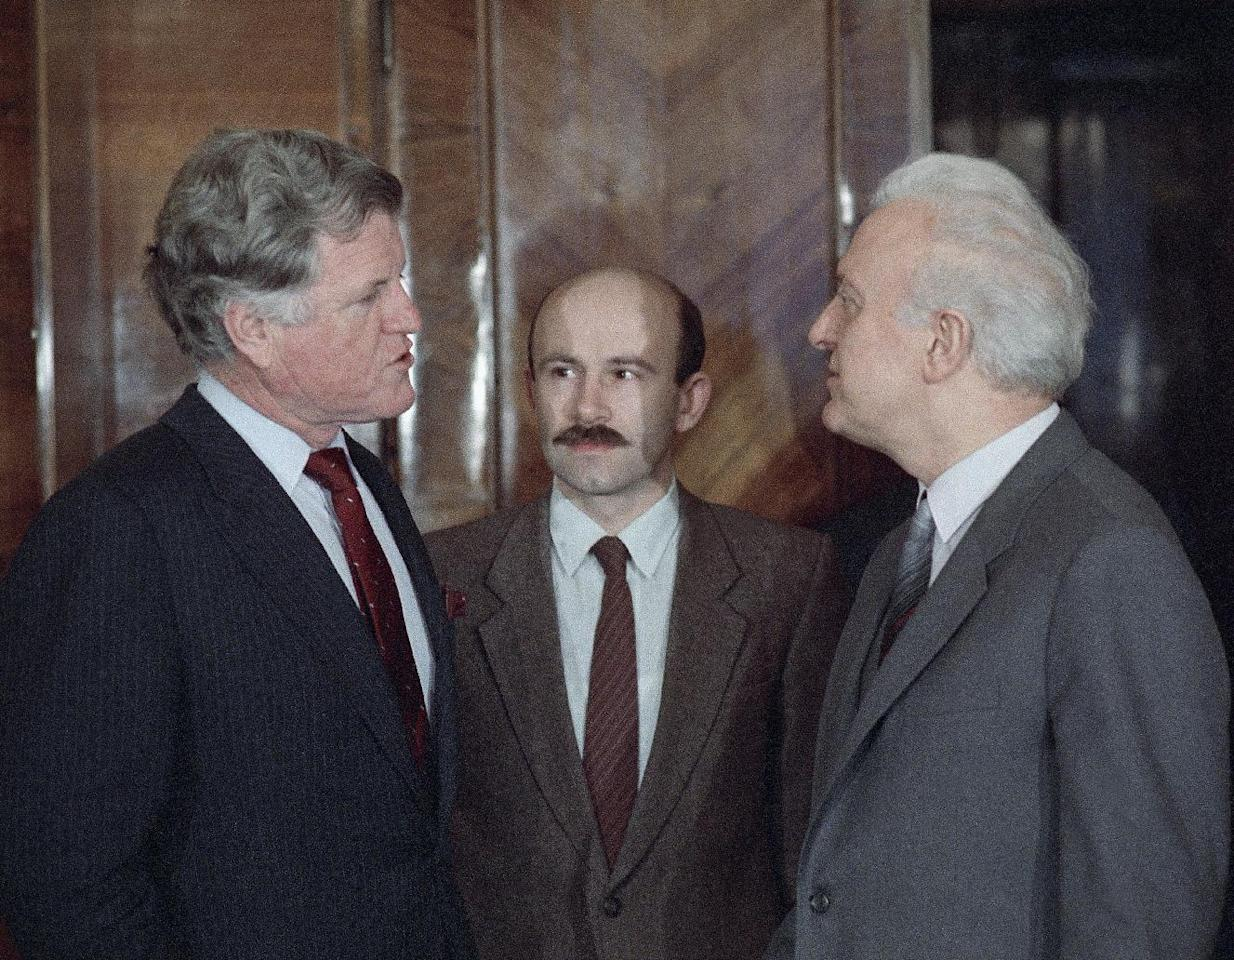 FILE - In this Wednesday, Feb. 5, 1986 file photo, Sen. Edward M. Kennedy (D-Mass.), left, meets with Soviet Foreign Minister Eduard Shevardnadze in Moscow. Eduard Shevardnadze, a groundbreaking Soviet foreign minister and later the president of an independent Georgia, died Monday, July 7, 2014, at the age of 86 after a long illness, his spokeswoman said. (AP Photo/Boris Yurchenko, file)